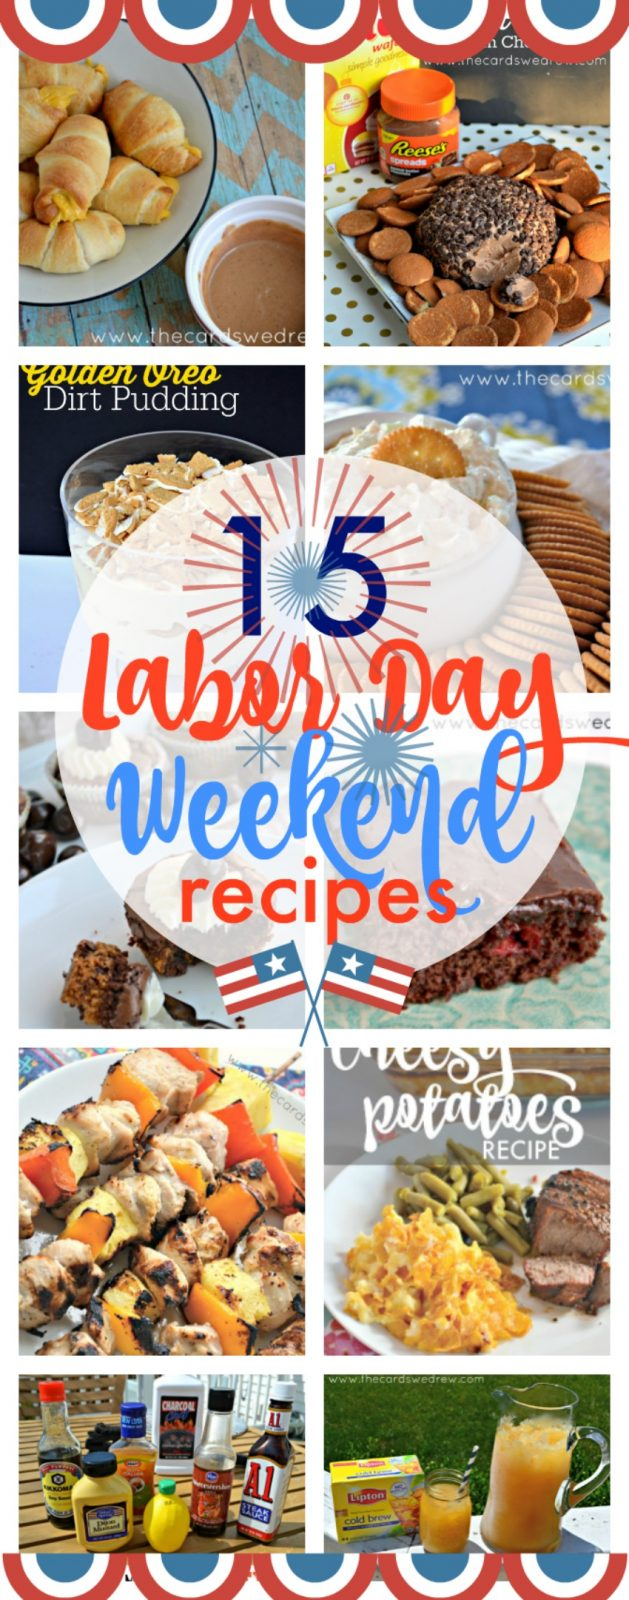 Labor Day Weekend Recipe Ideas from The Cards We Drew